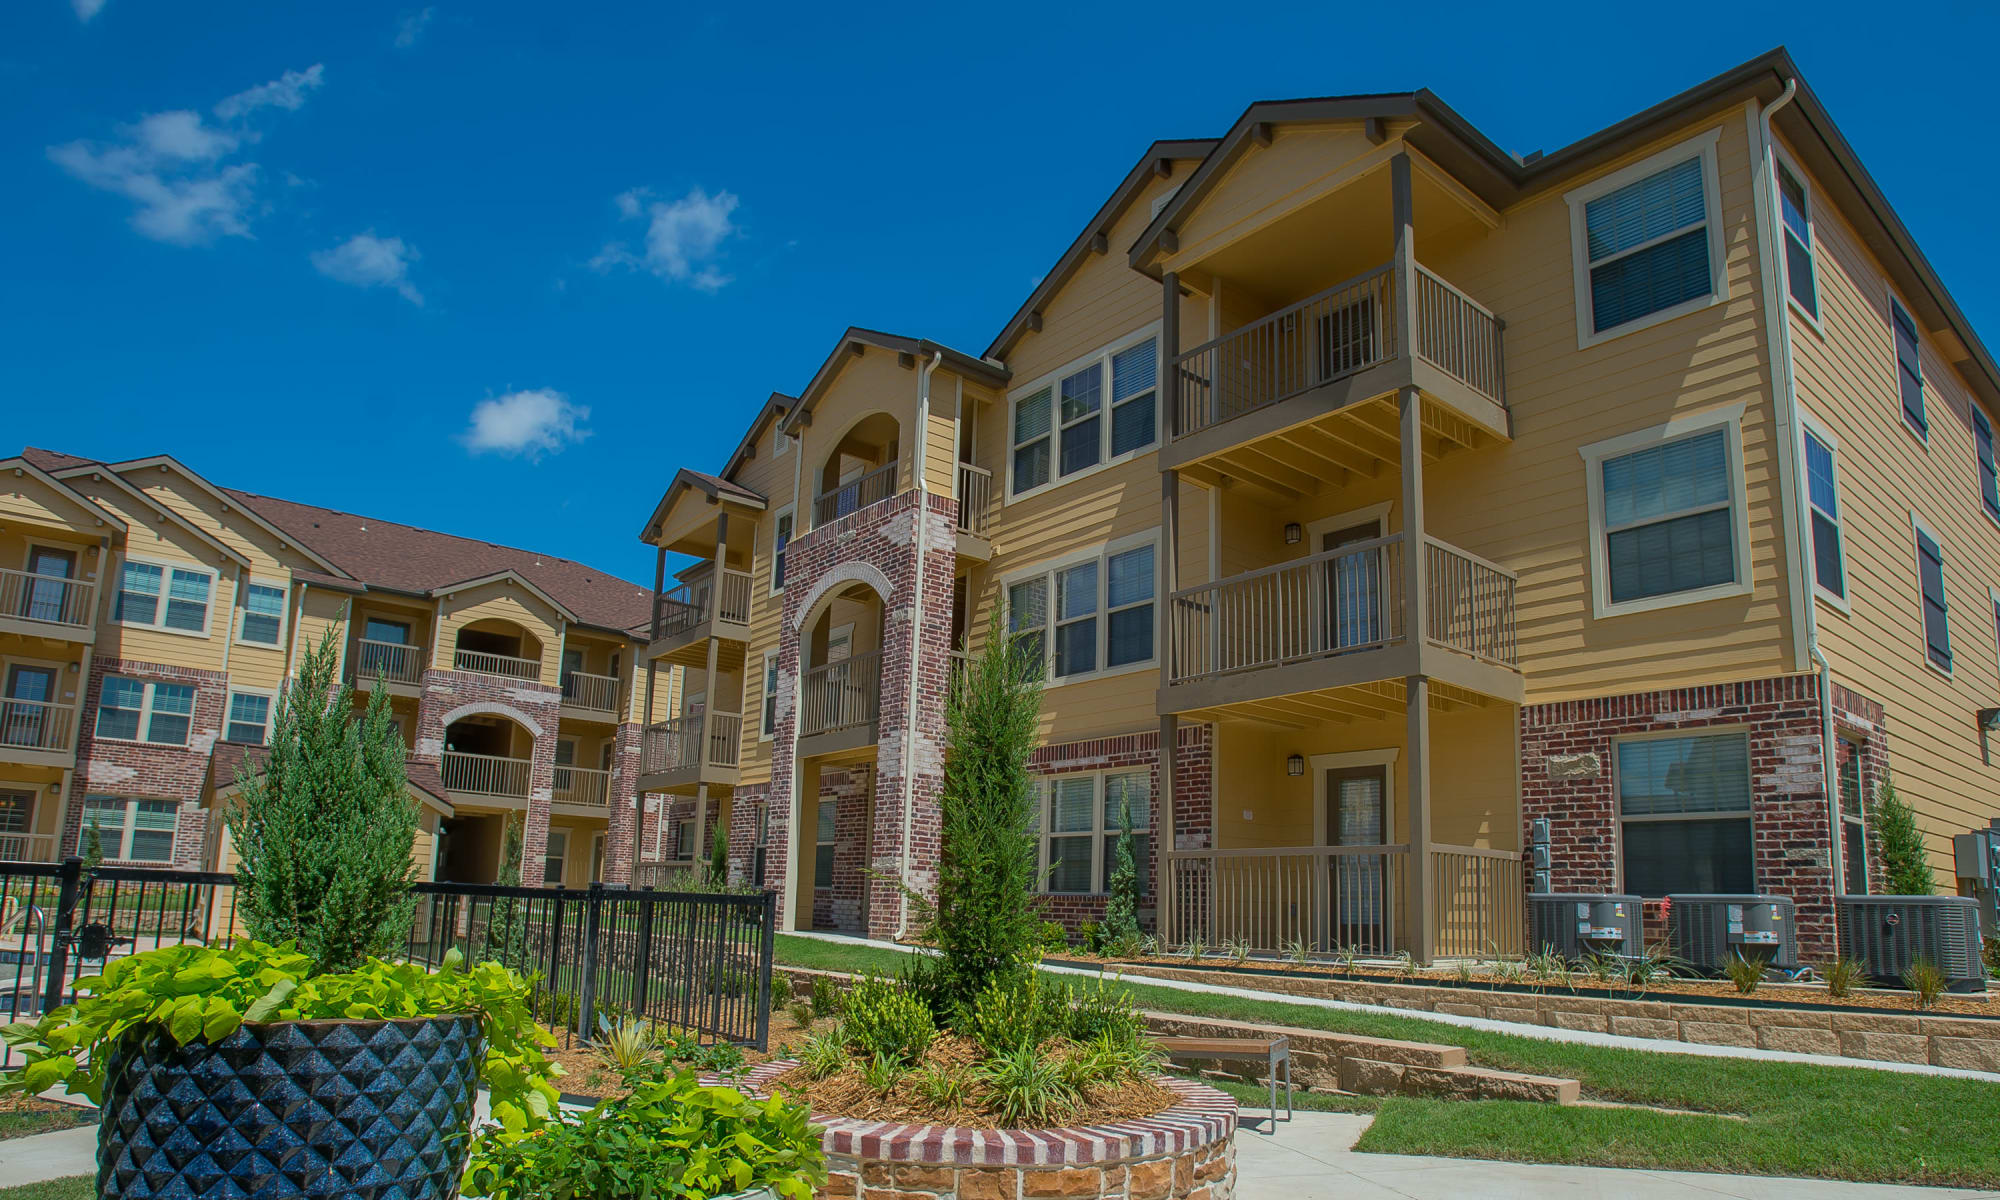 Apartments at Tuscany Ranch in Waco, Texas